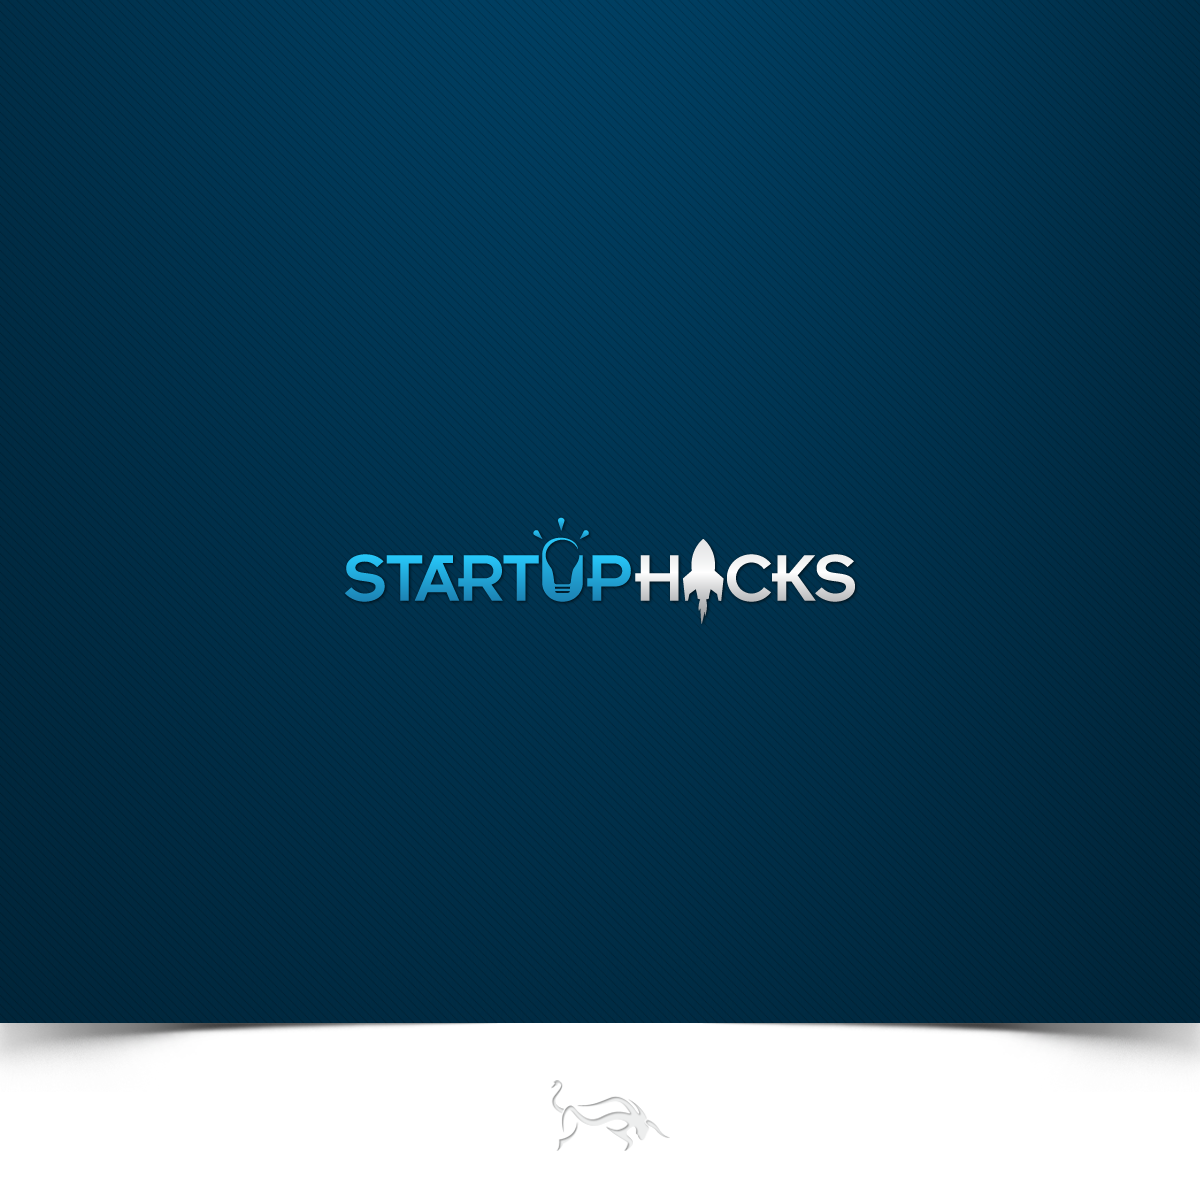 Help Startup Hacks with a new logo